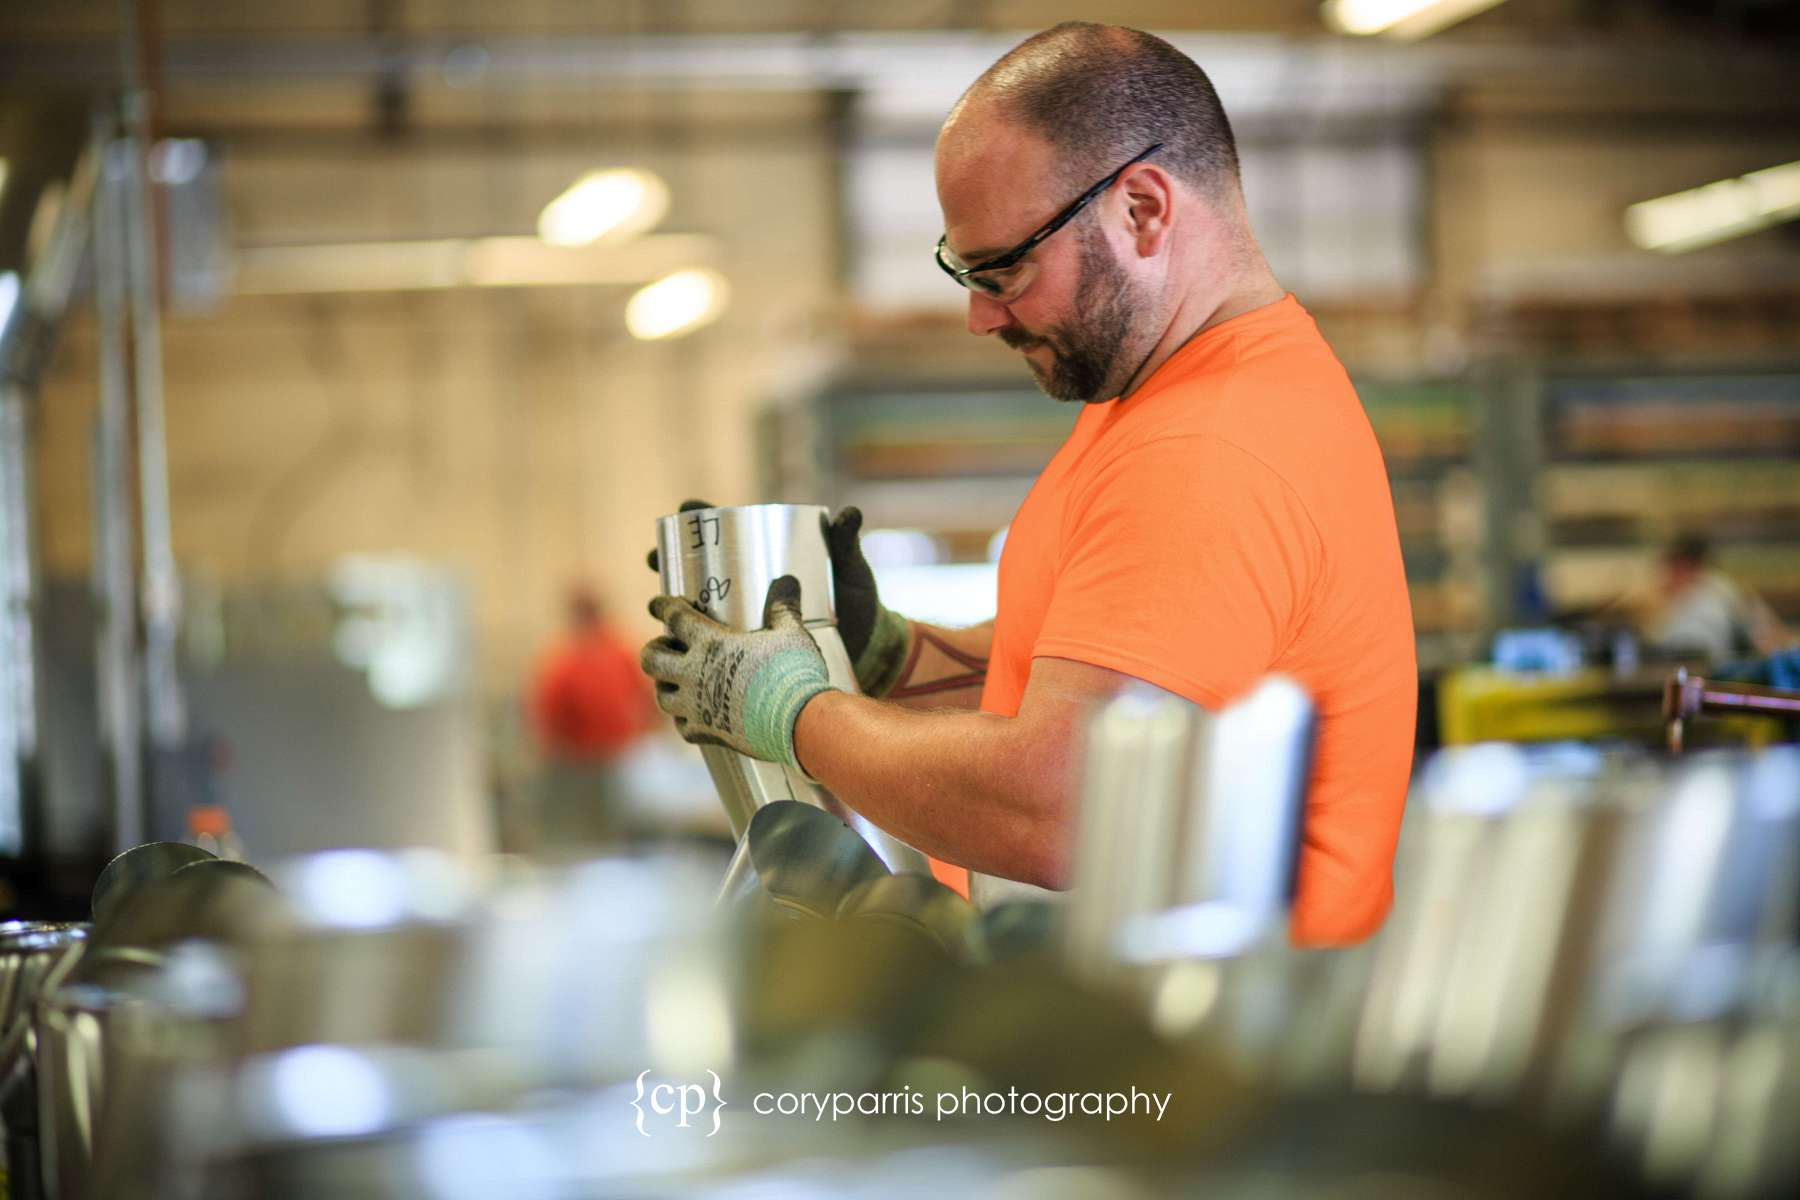 Day 2 - 274-Seattle-Workplace-Photography.jpg